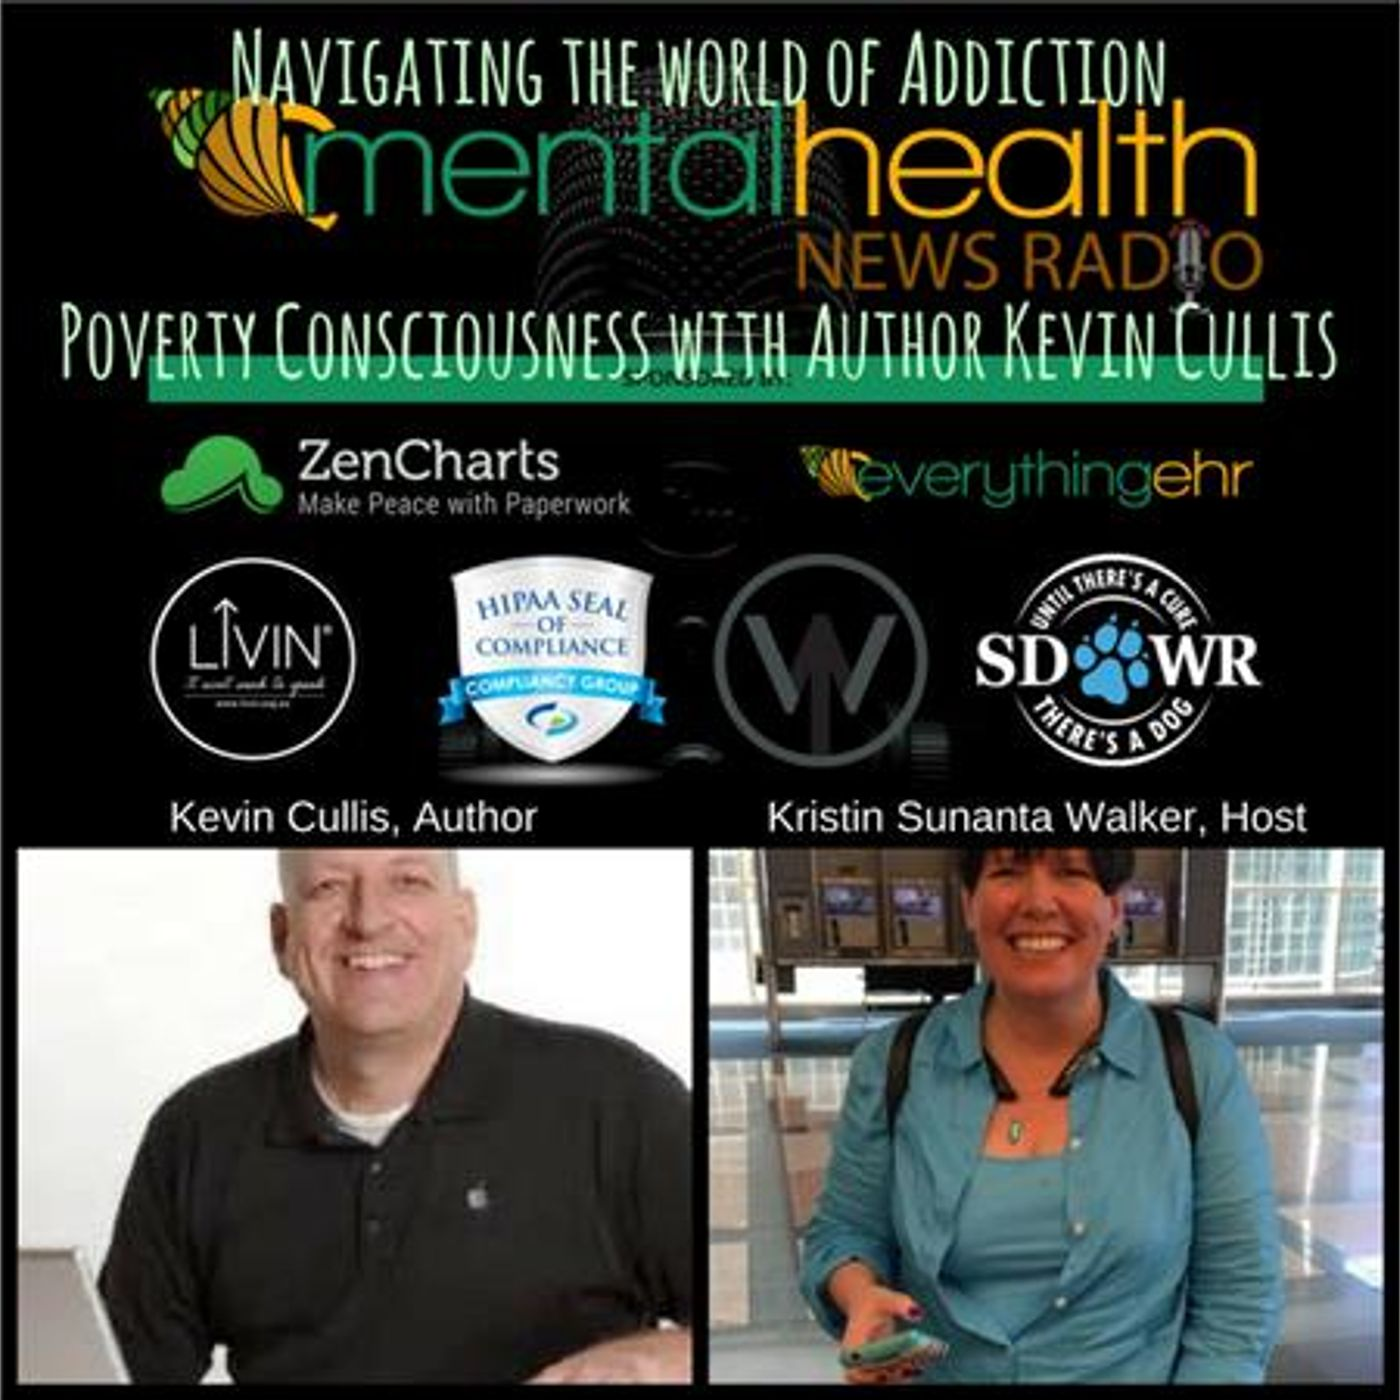 Mental Health News Radio - Navigating The World of Addiction:Poverty Consciousness with Author Kevin Cullis